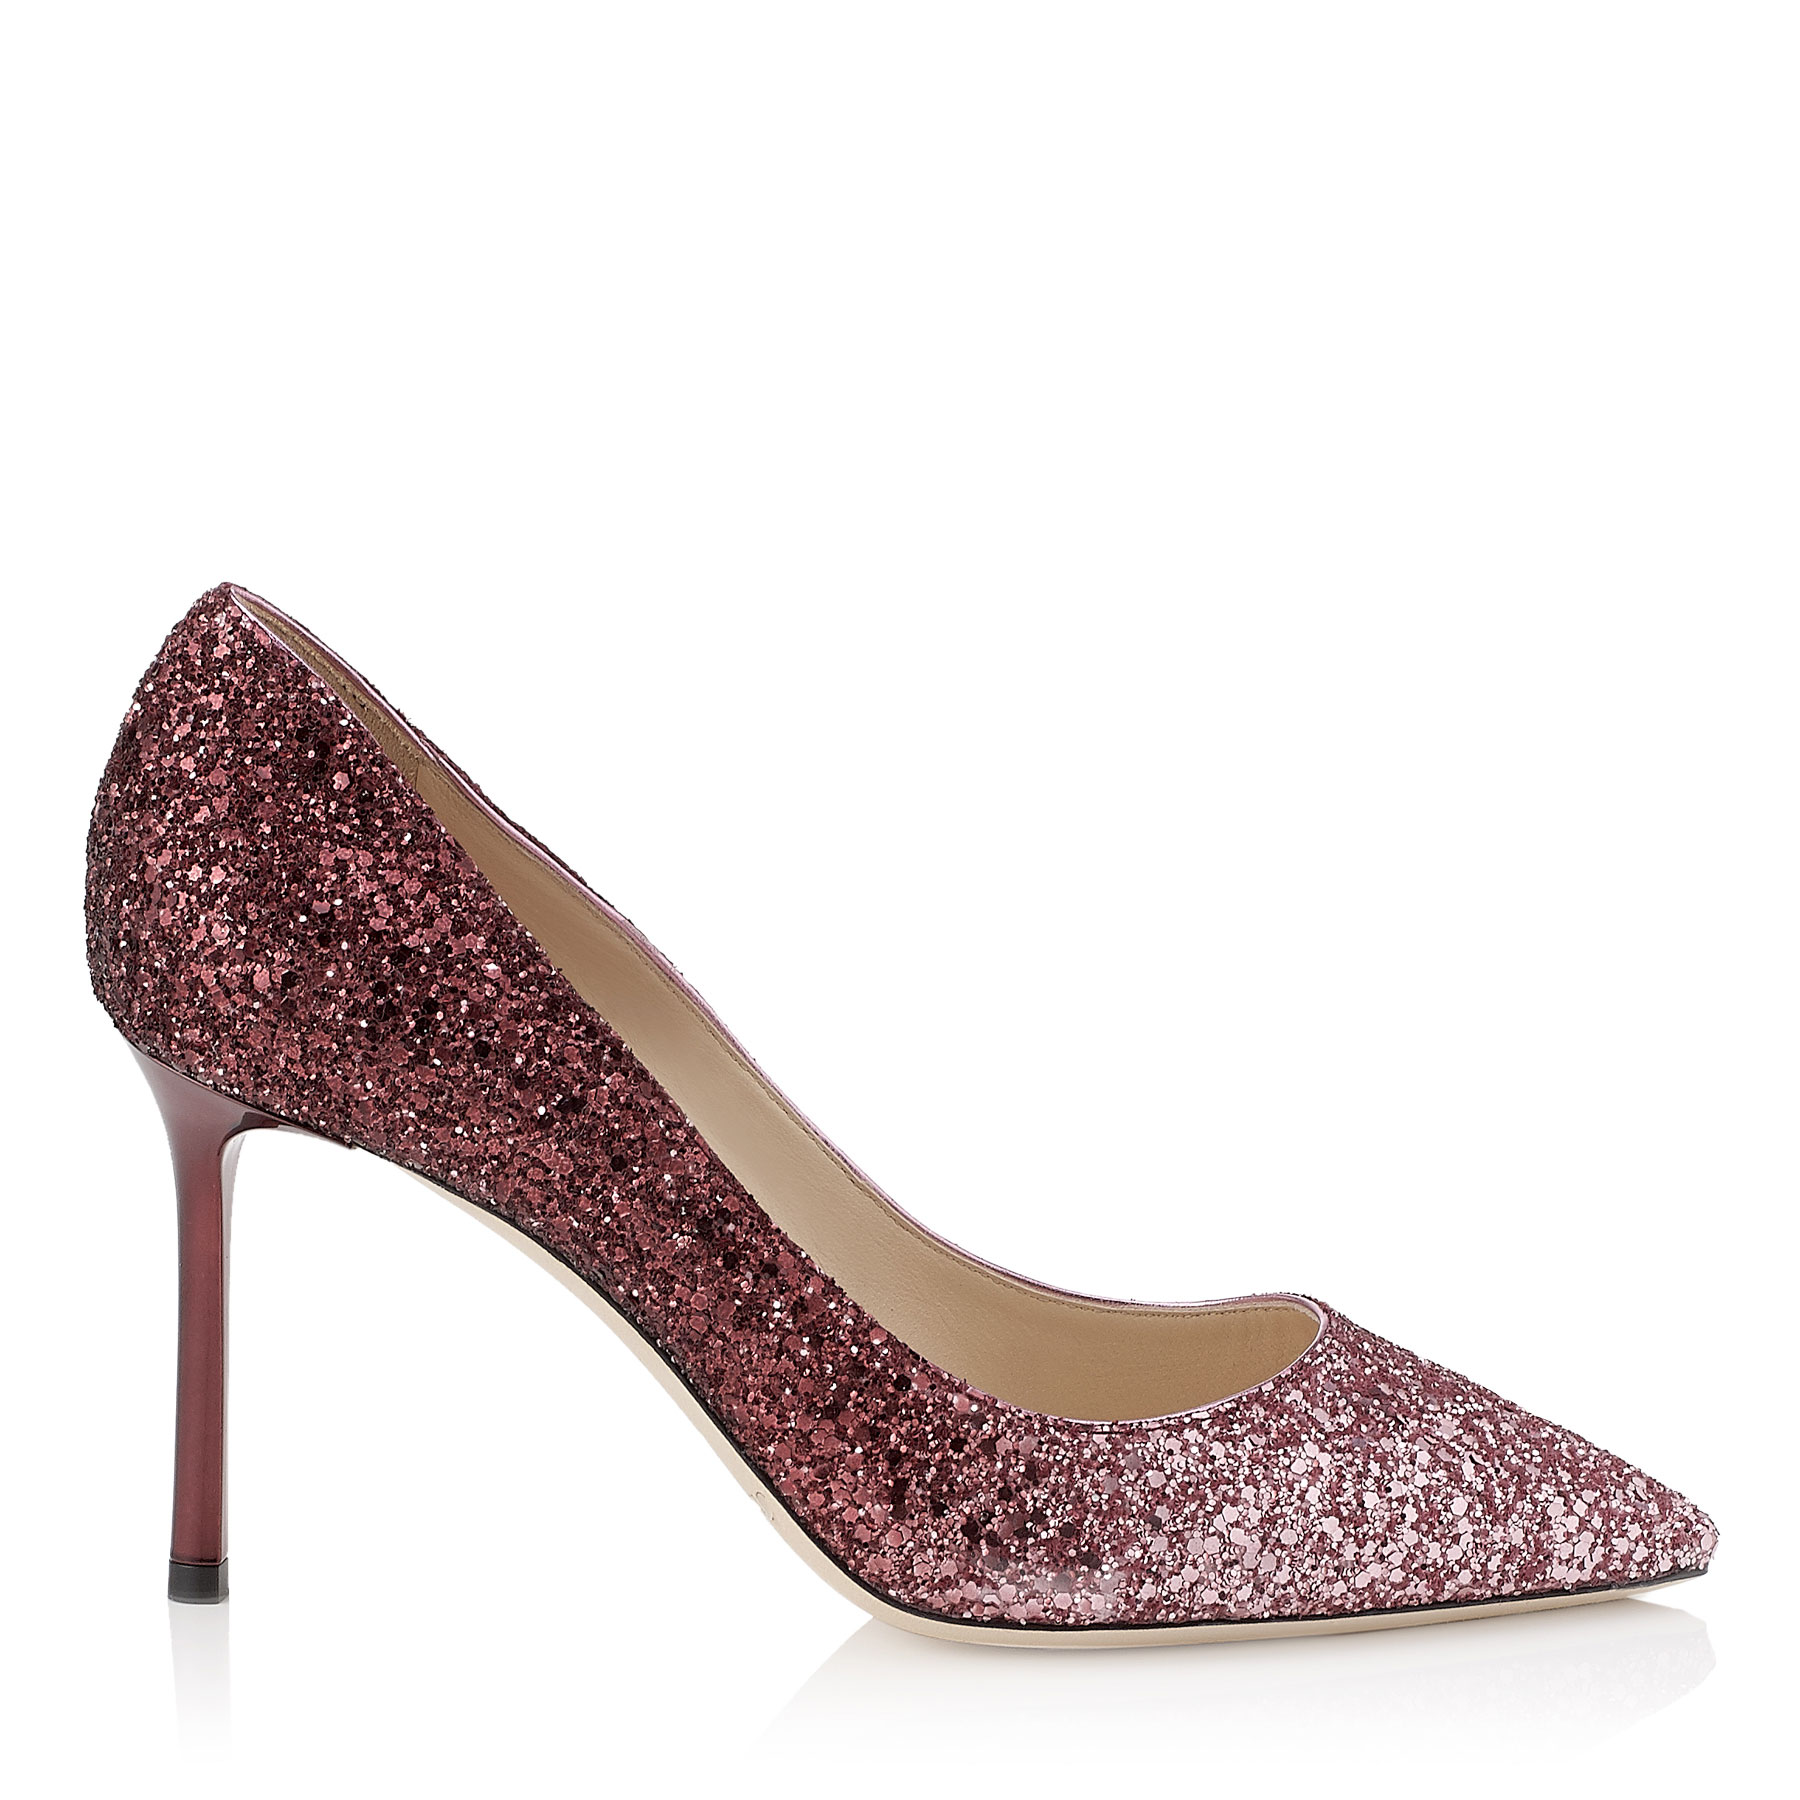 ROMY 85 Pink and Bordeaux Dégradé Coarse Glitter Fabric Pointy Toe Pumps